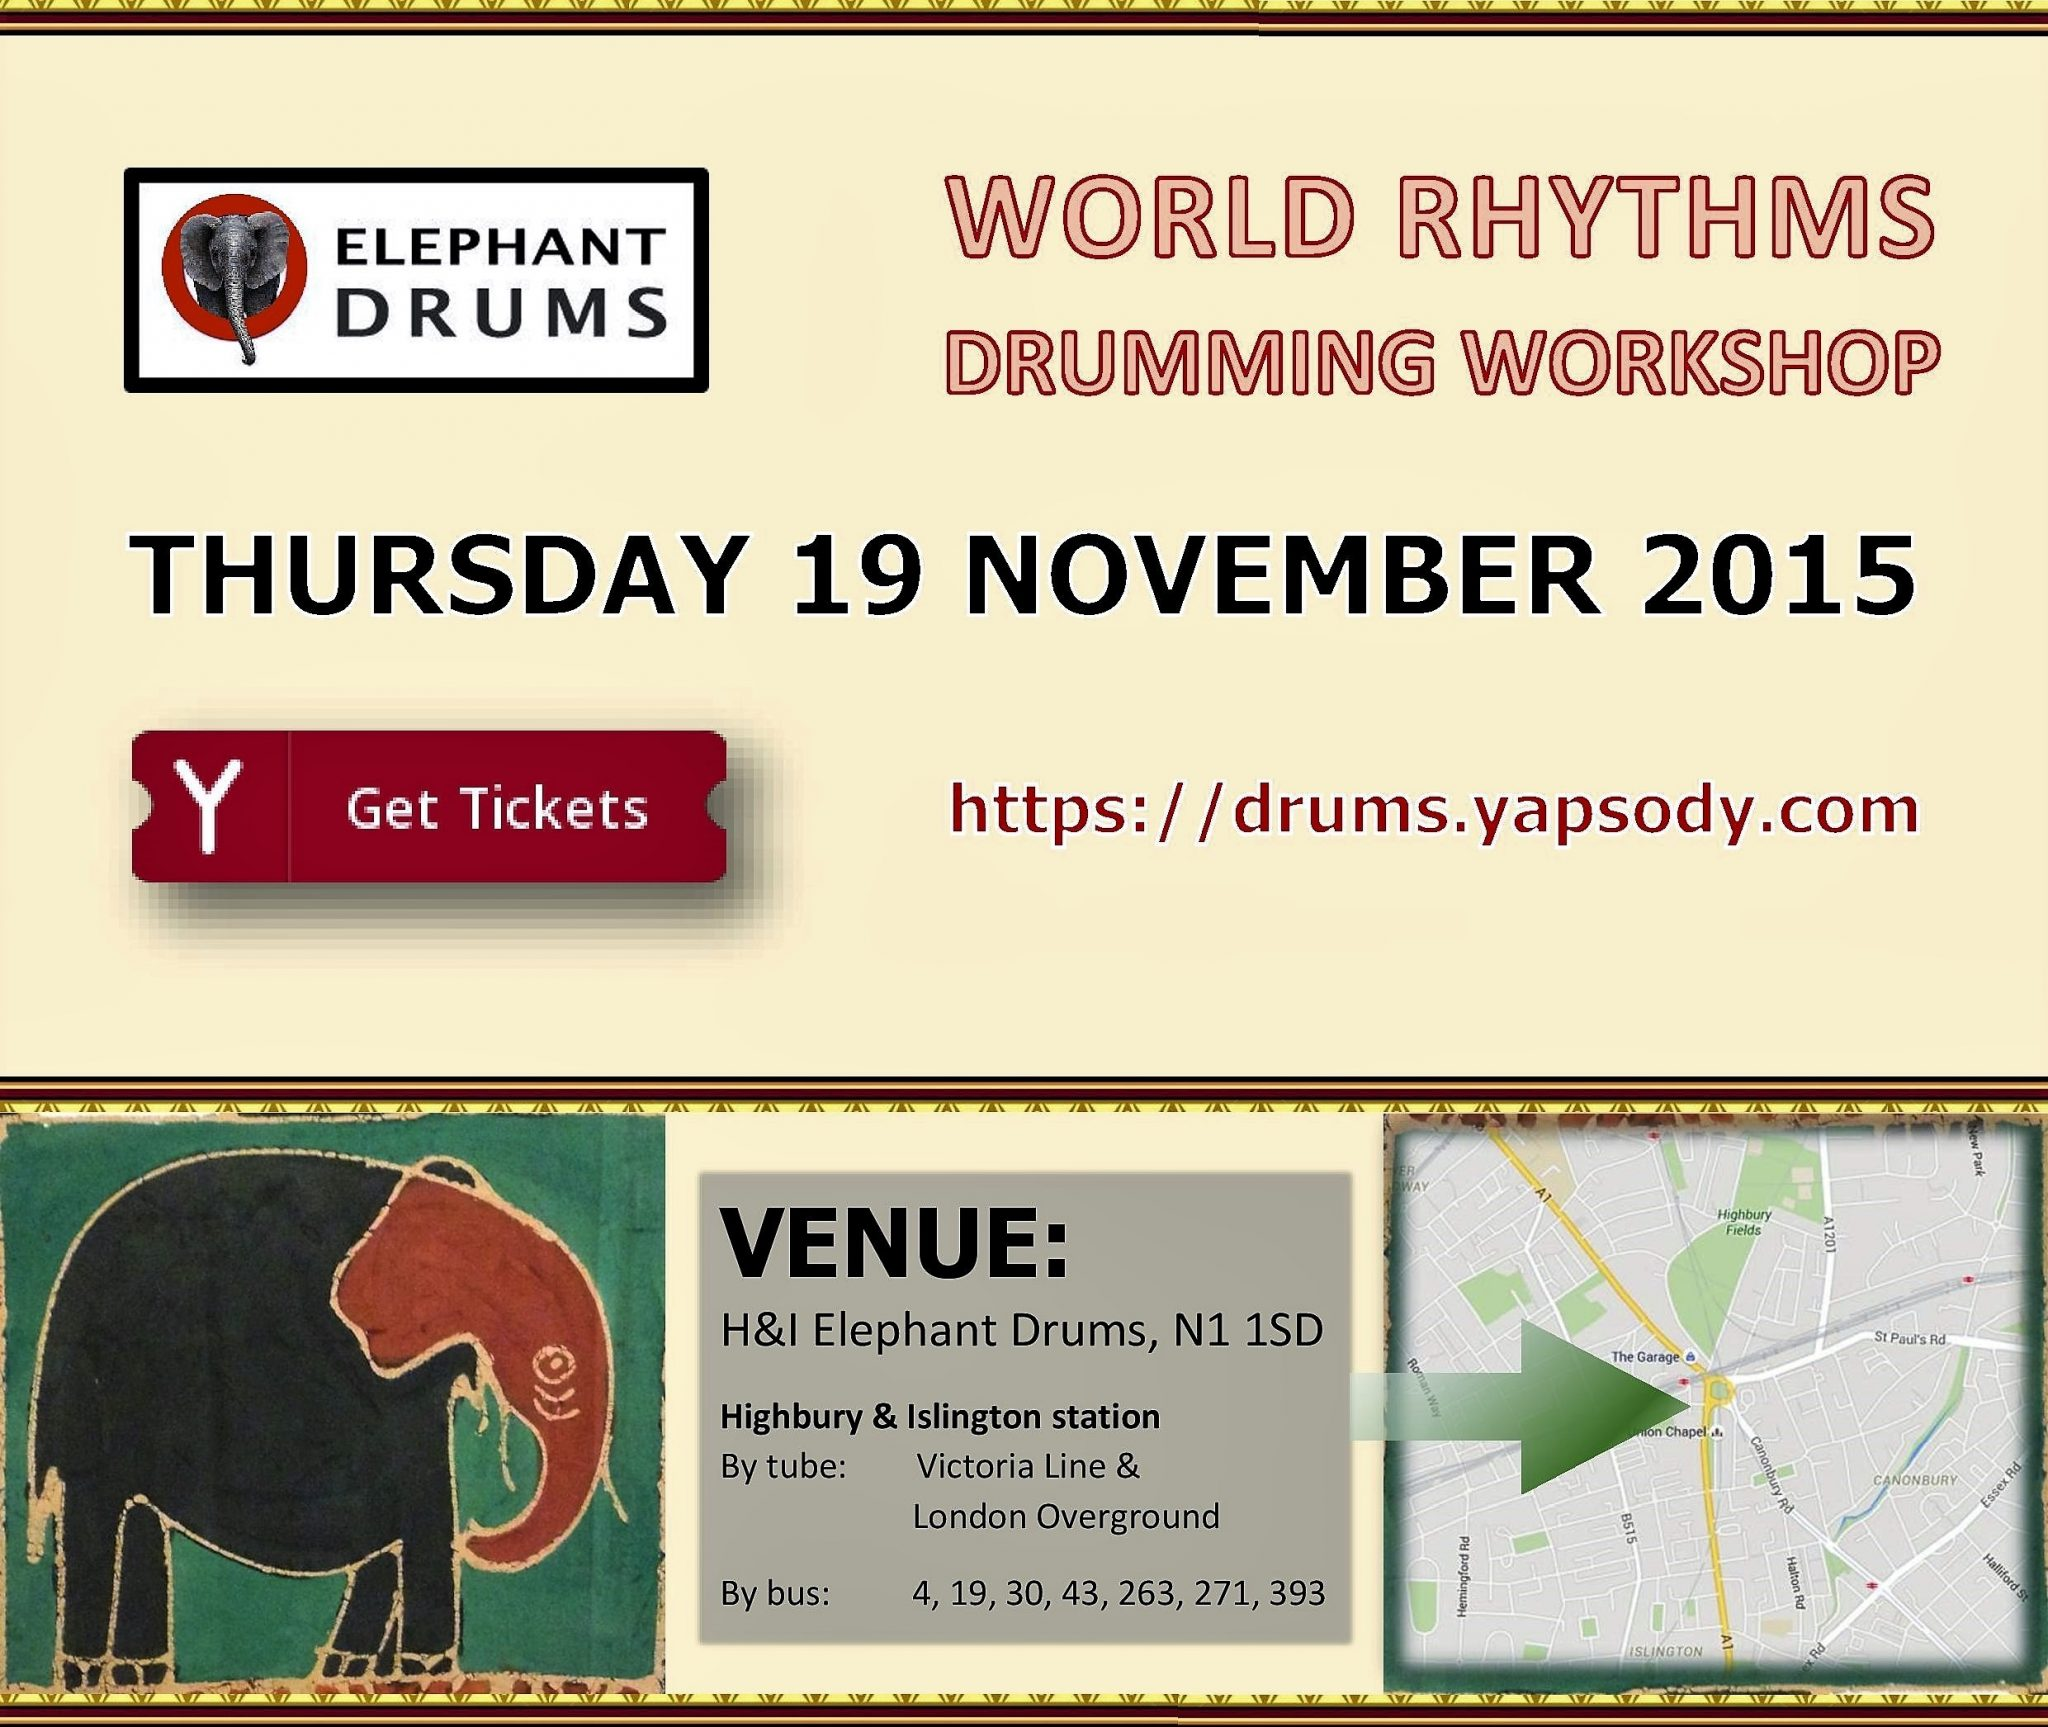 Elephant Drums workshop Thursday 19 November 2015